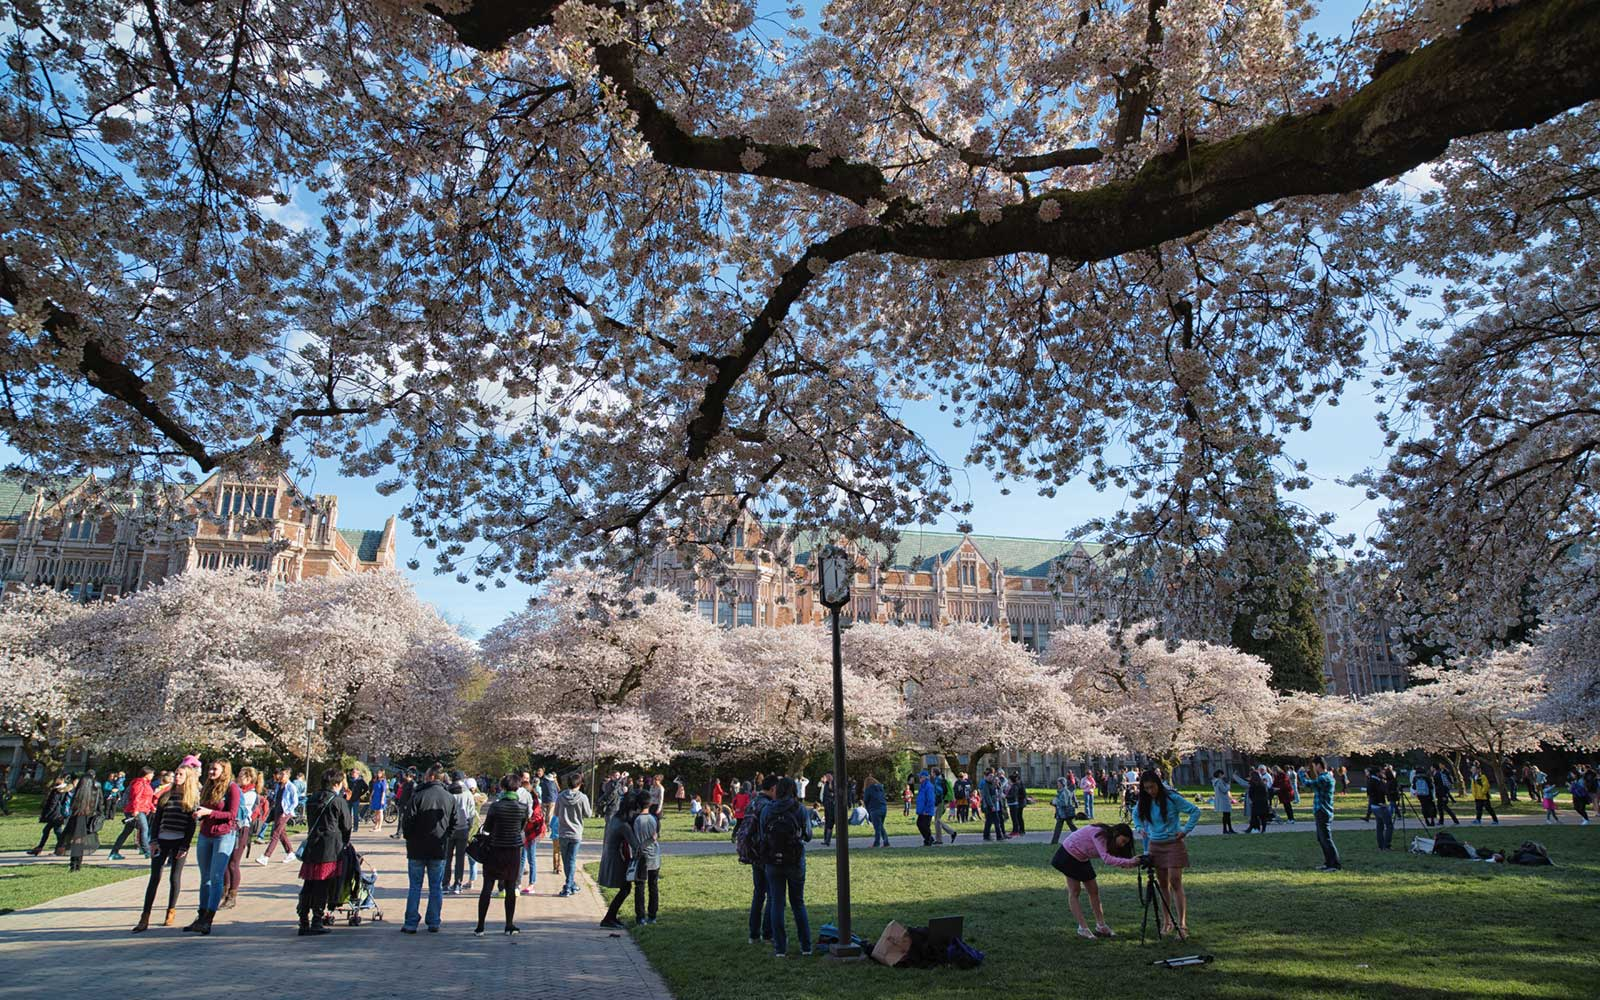 Cherry Blossoms at the University of Washington in Seattle, Washington